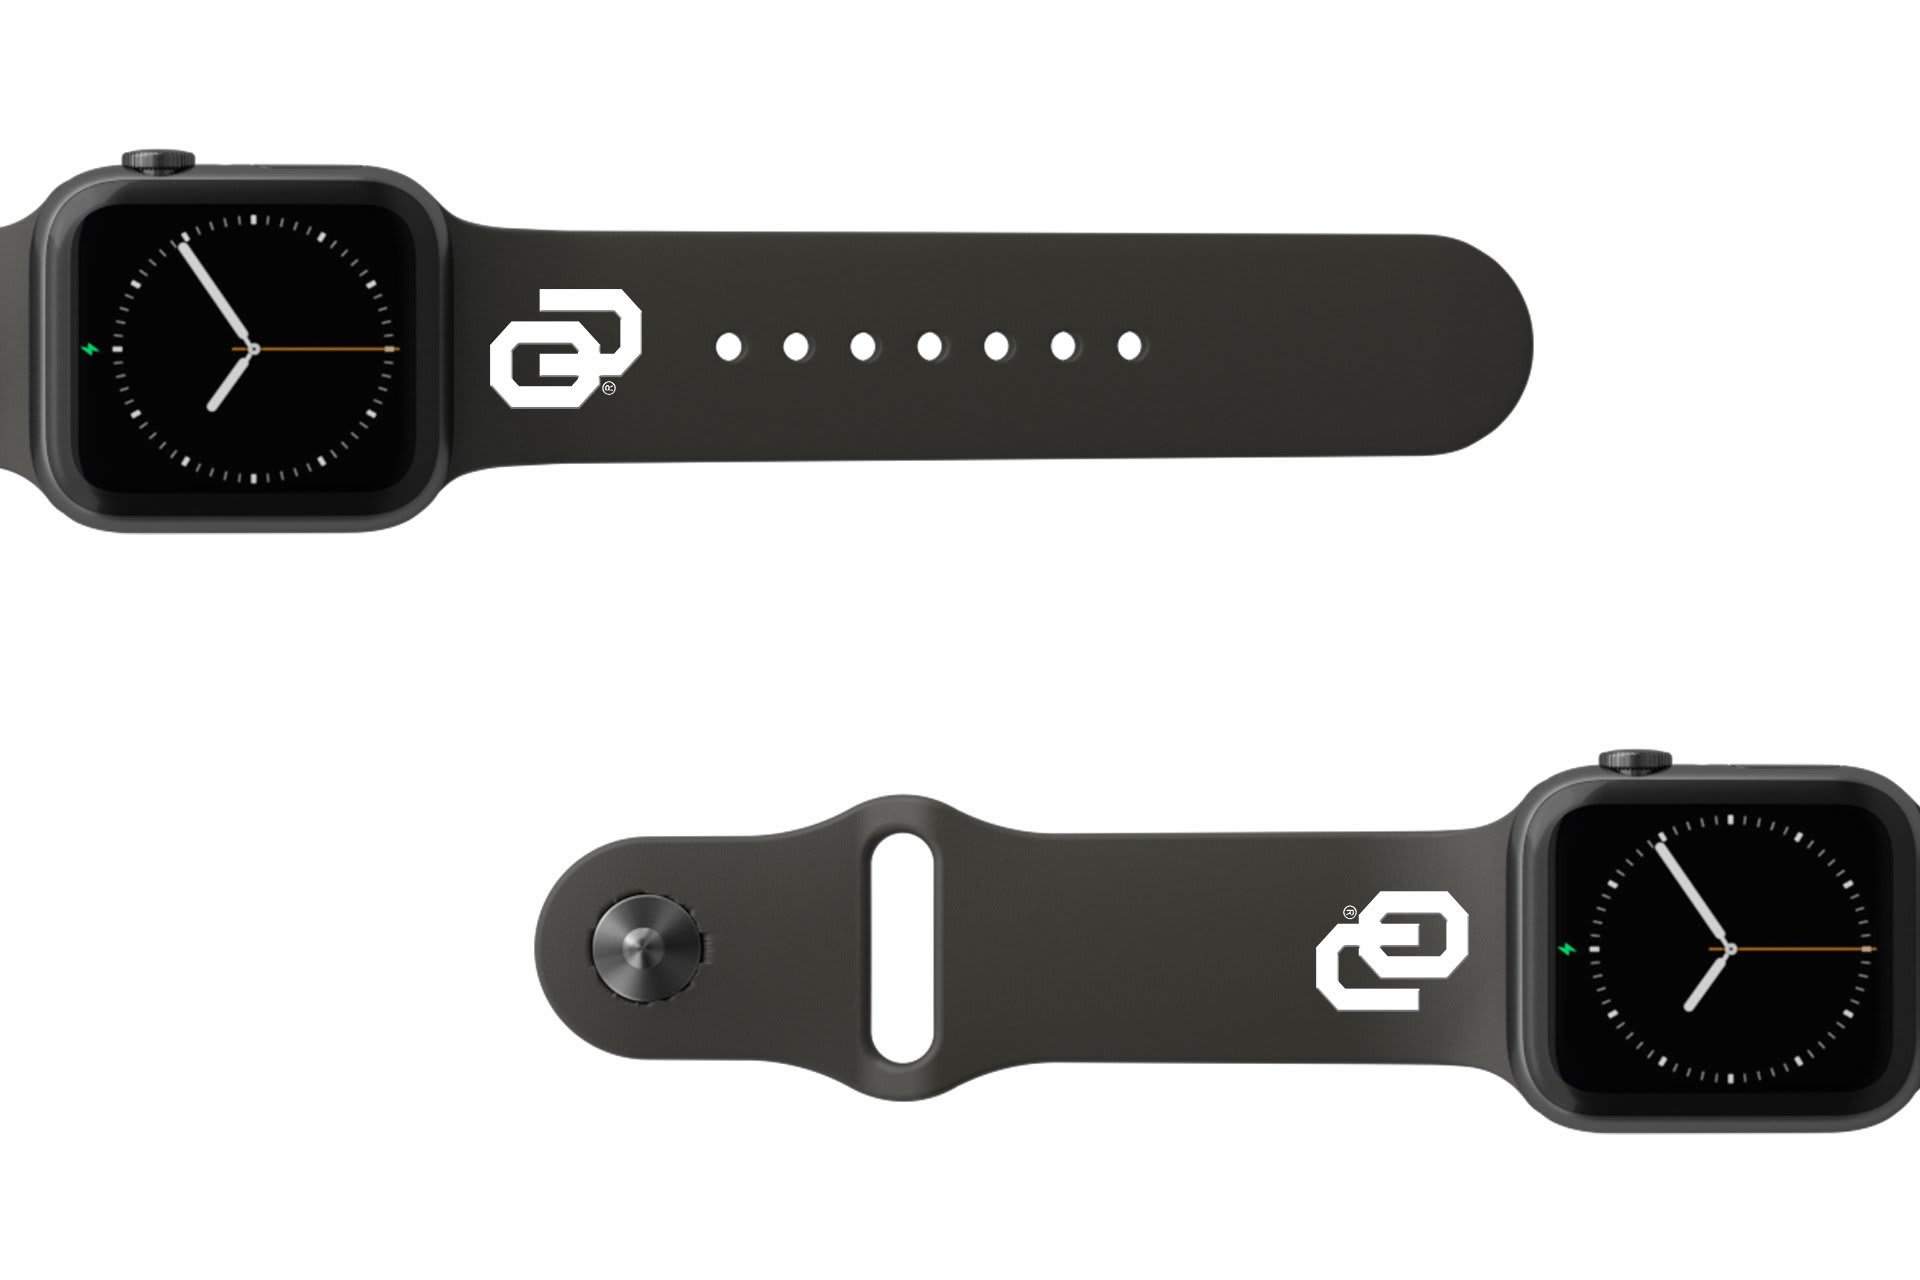 College Oklahoma Black apple watch band with gray hardware viewed from rear